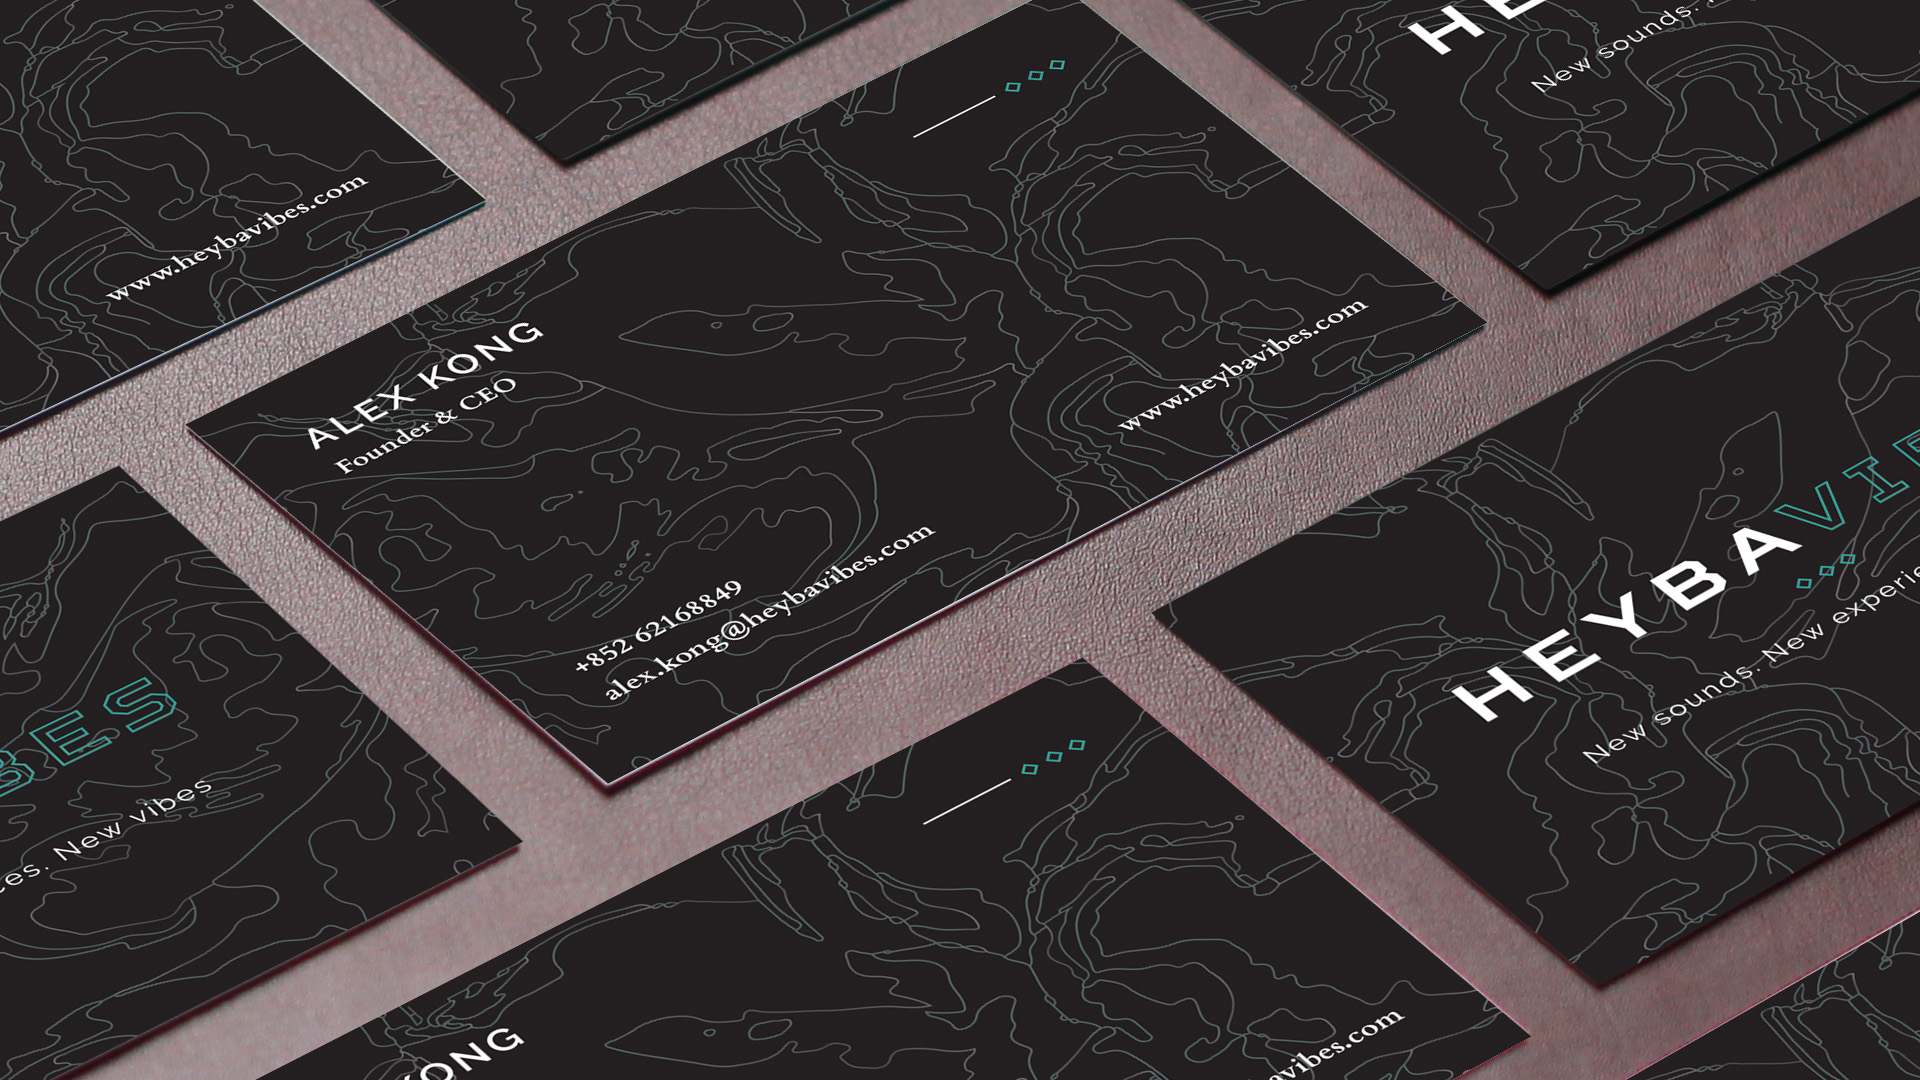 Heybavibes business cards flat